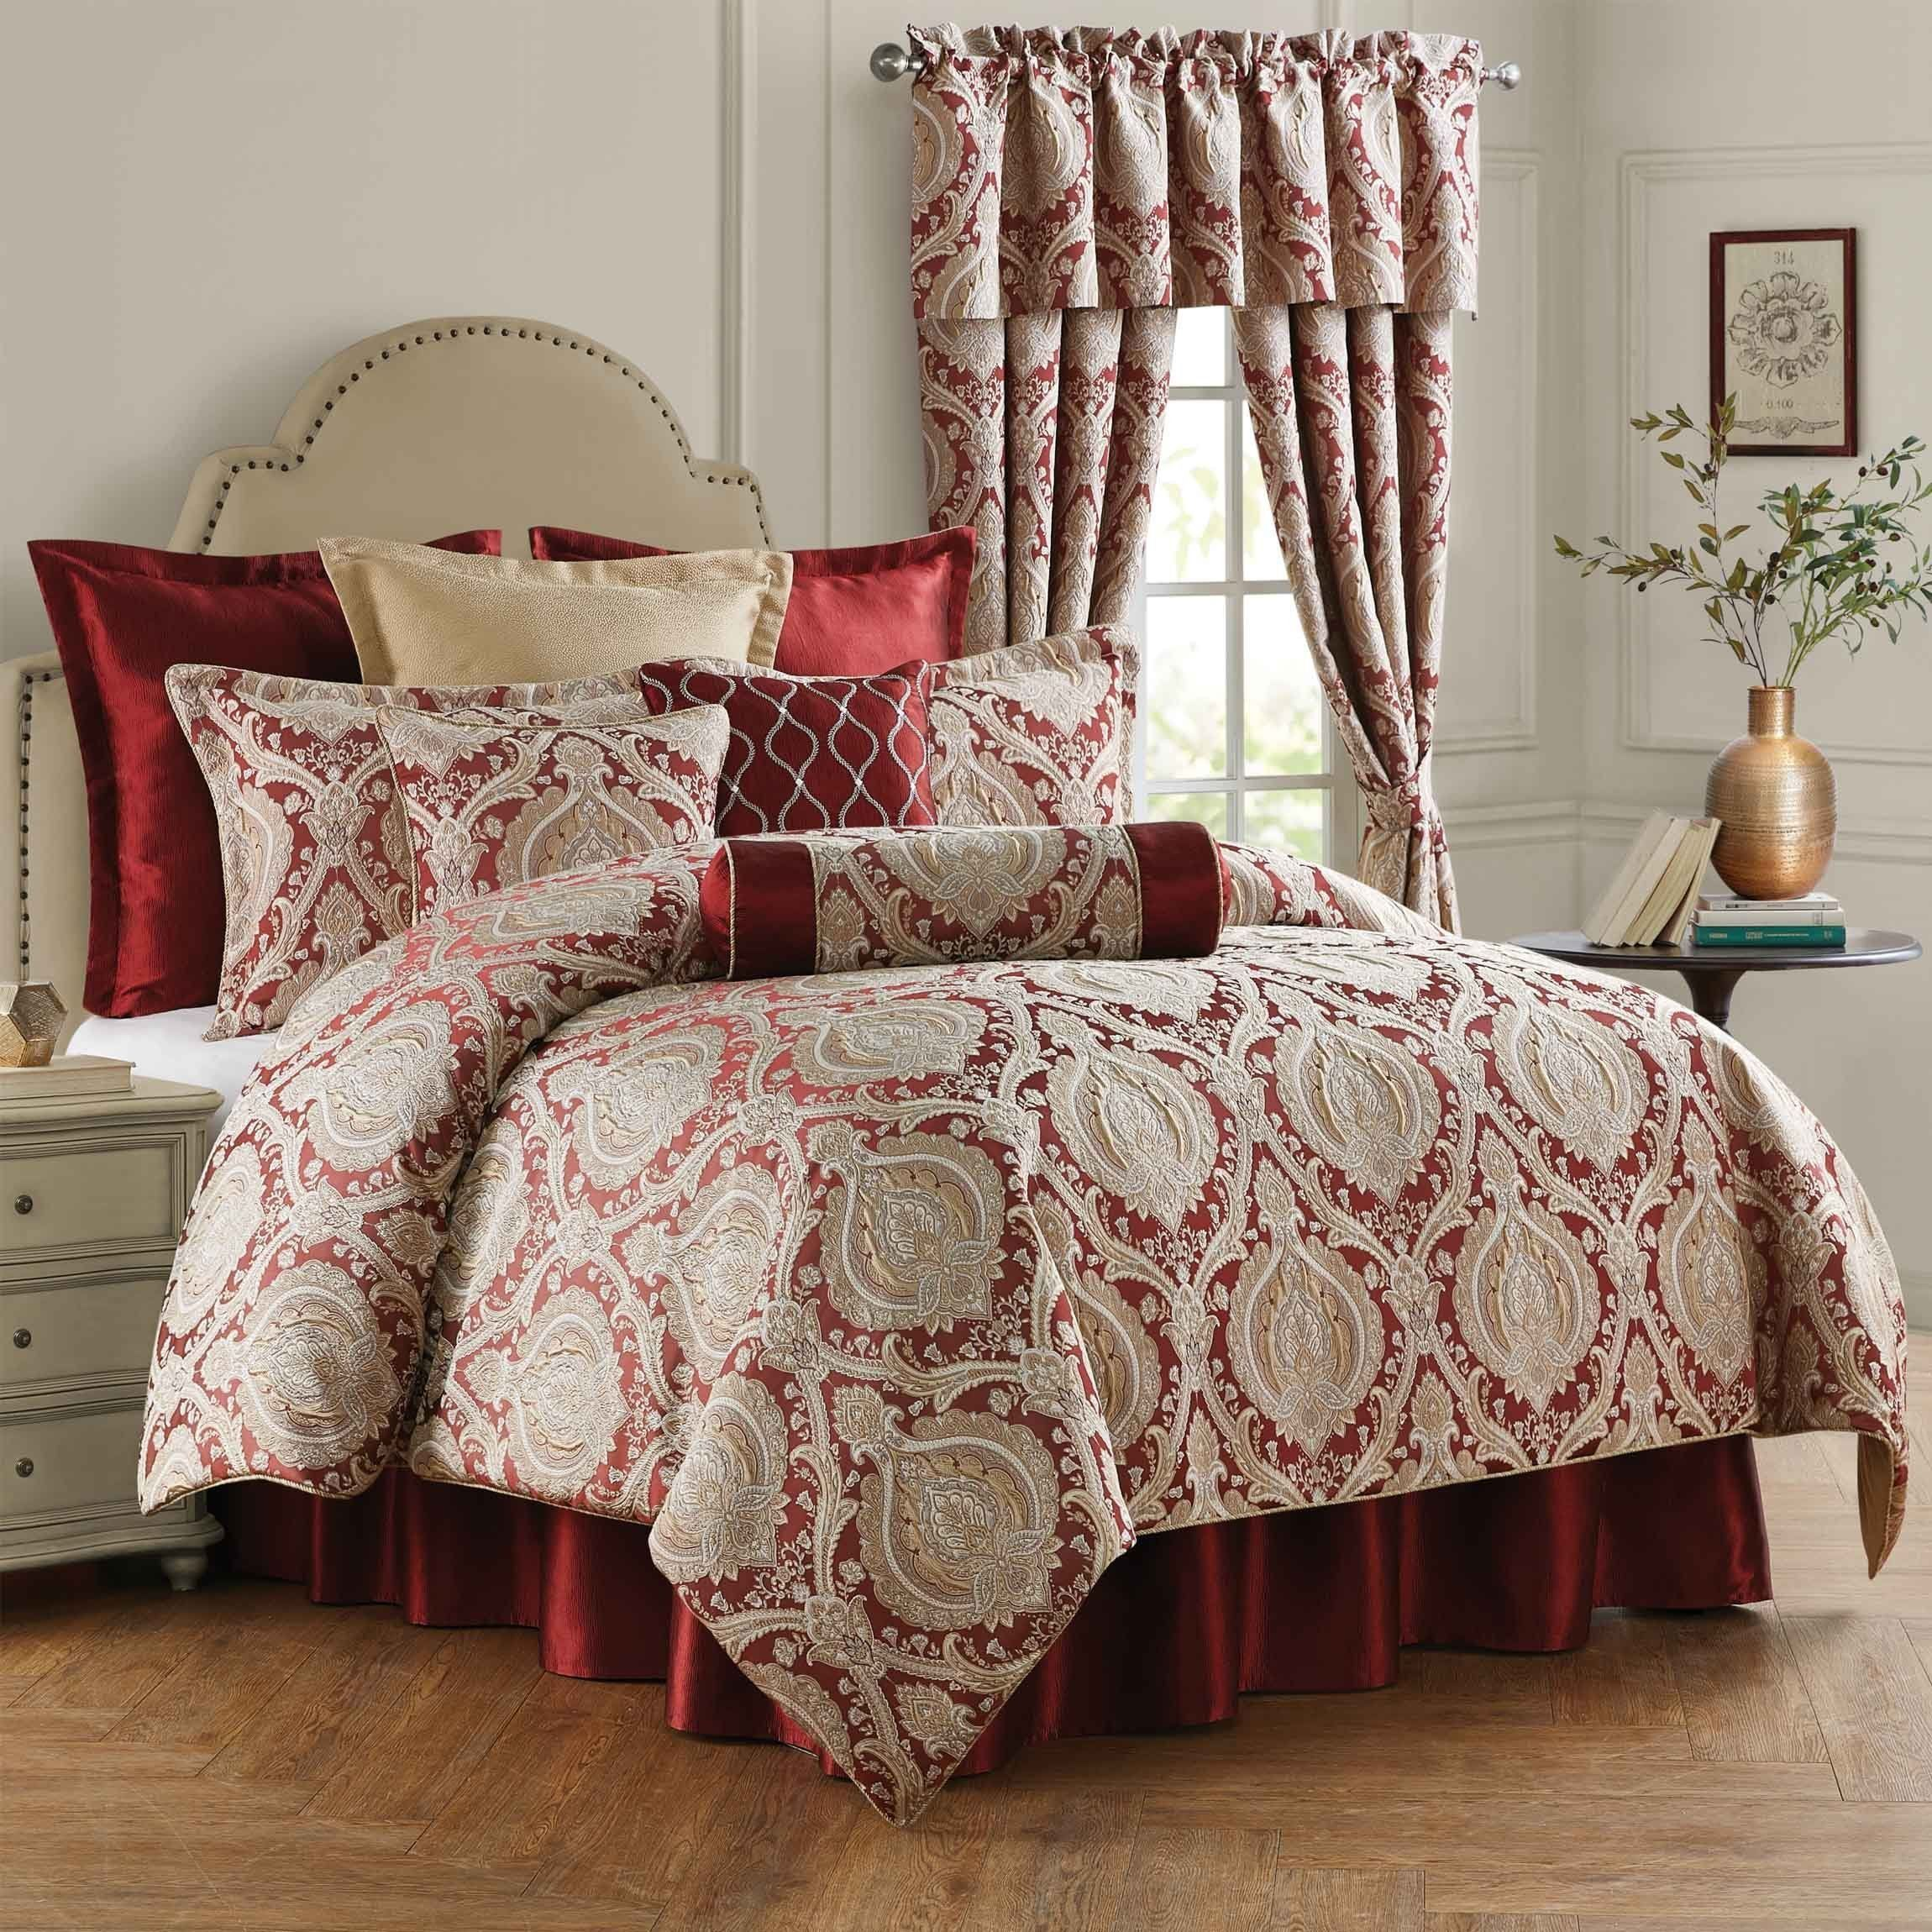 Norwich Wine 4 Piece Comforter Set Comforter Sets King Comforter Sets Rose Trees